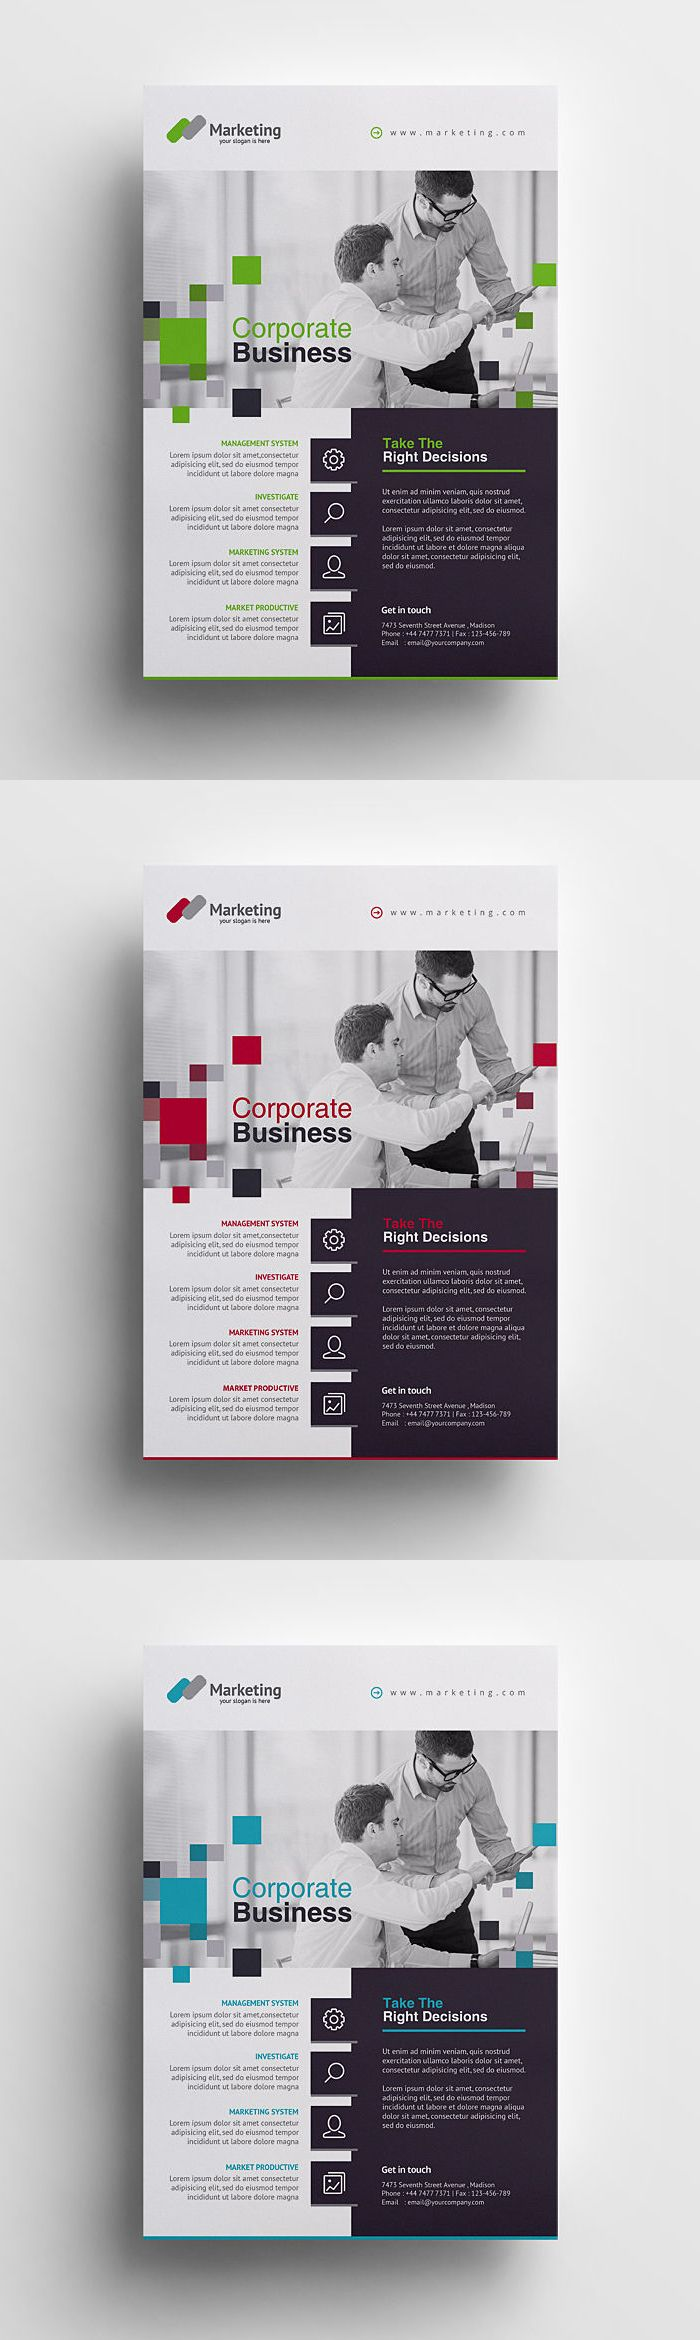 Creative Business Flyer Template PSD                                                                                                                                                                                 More